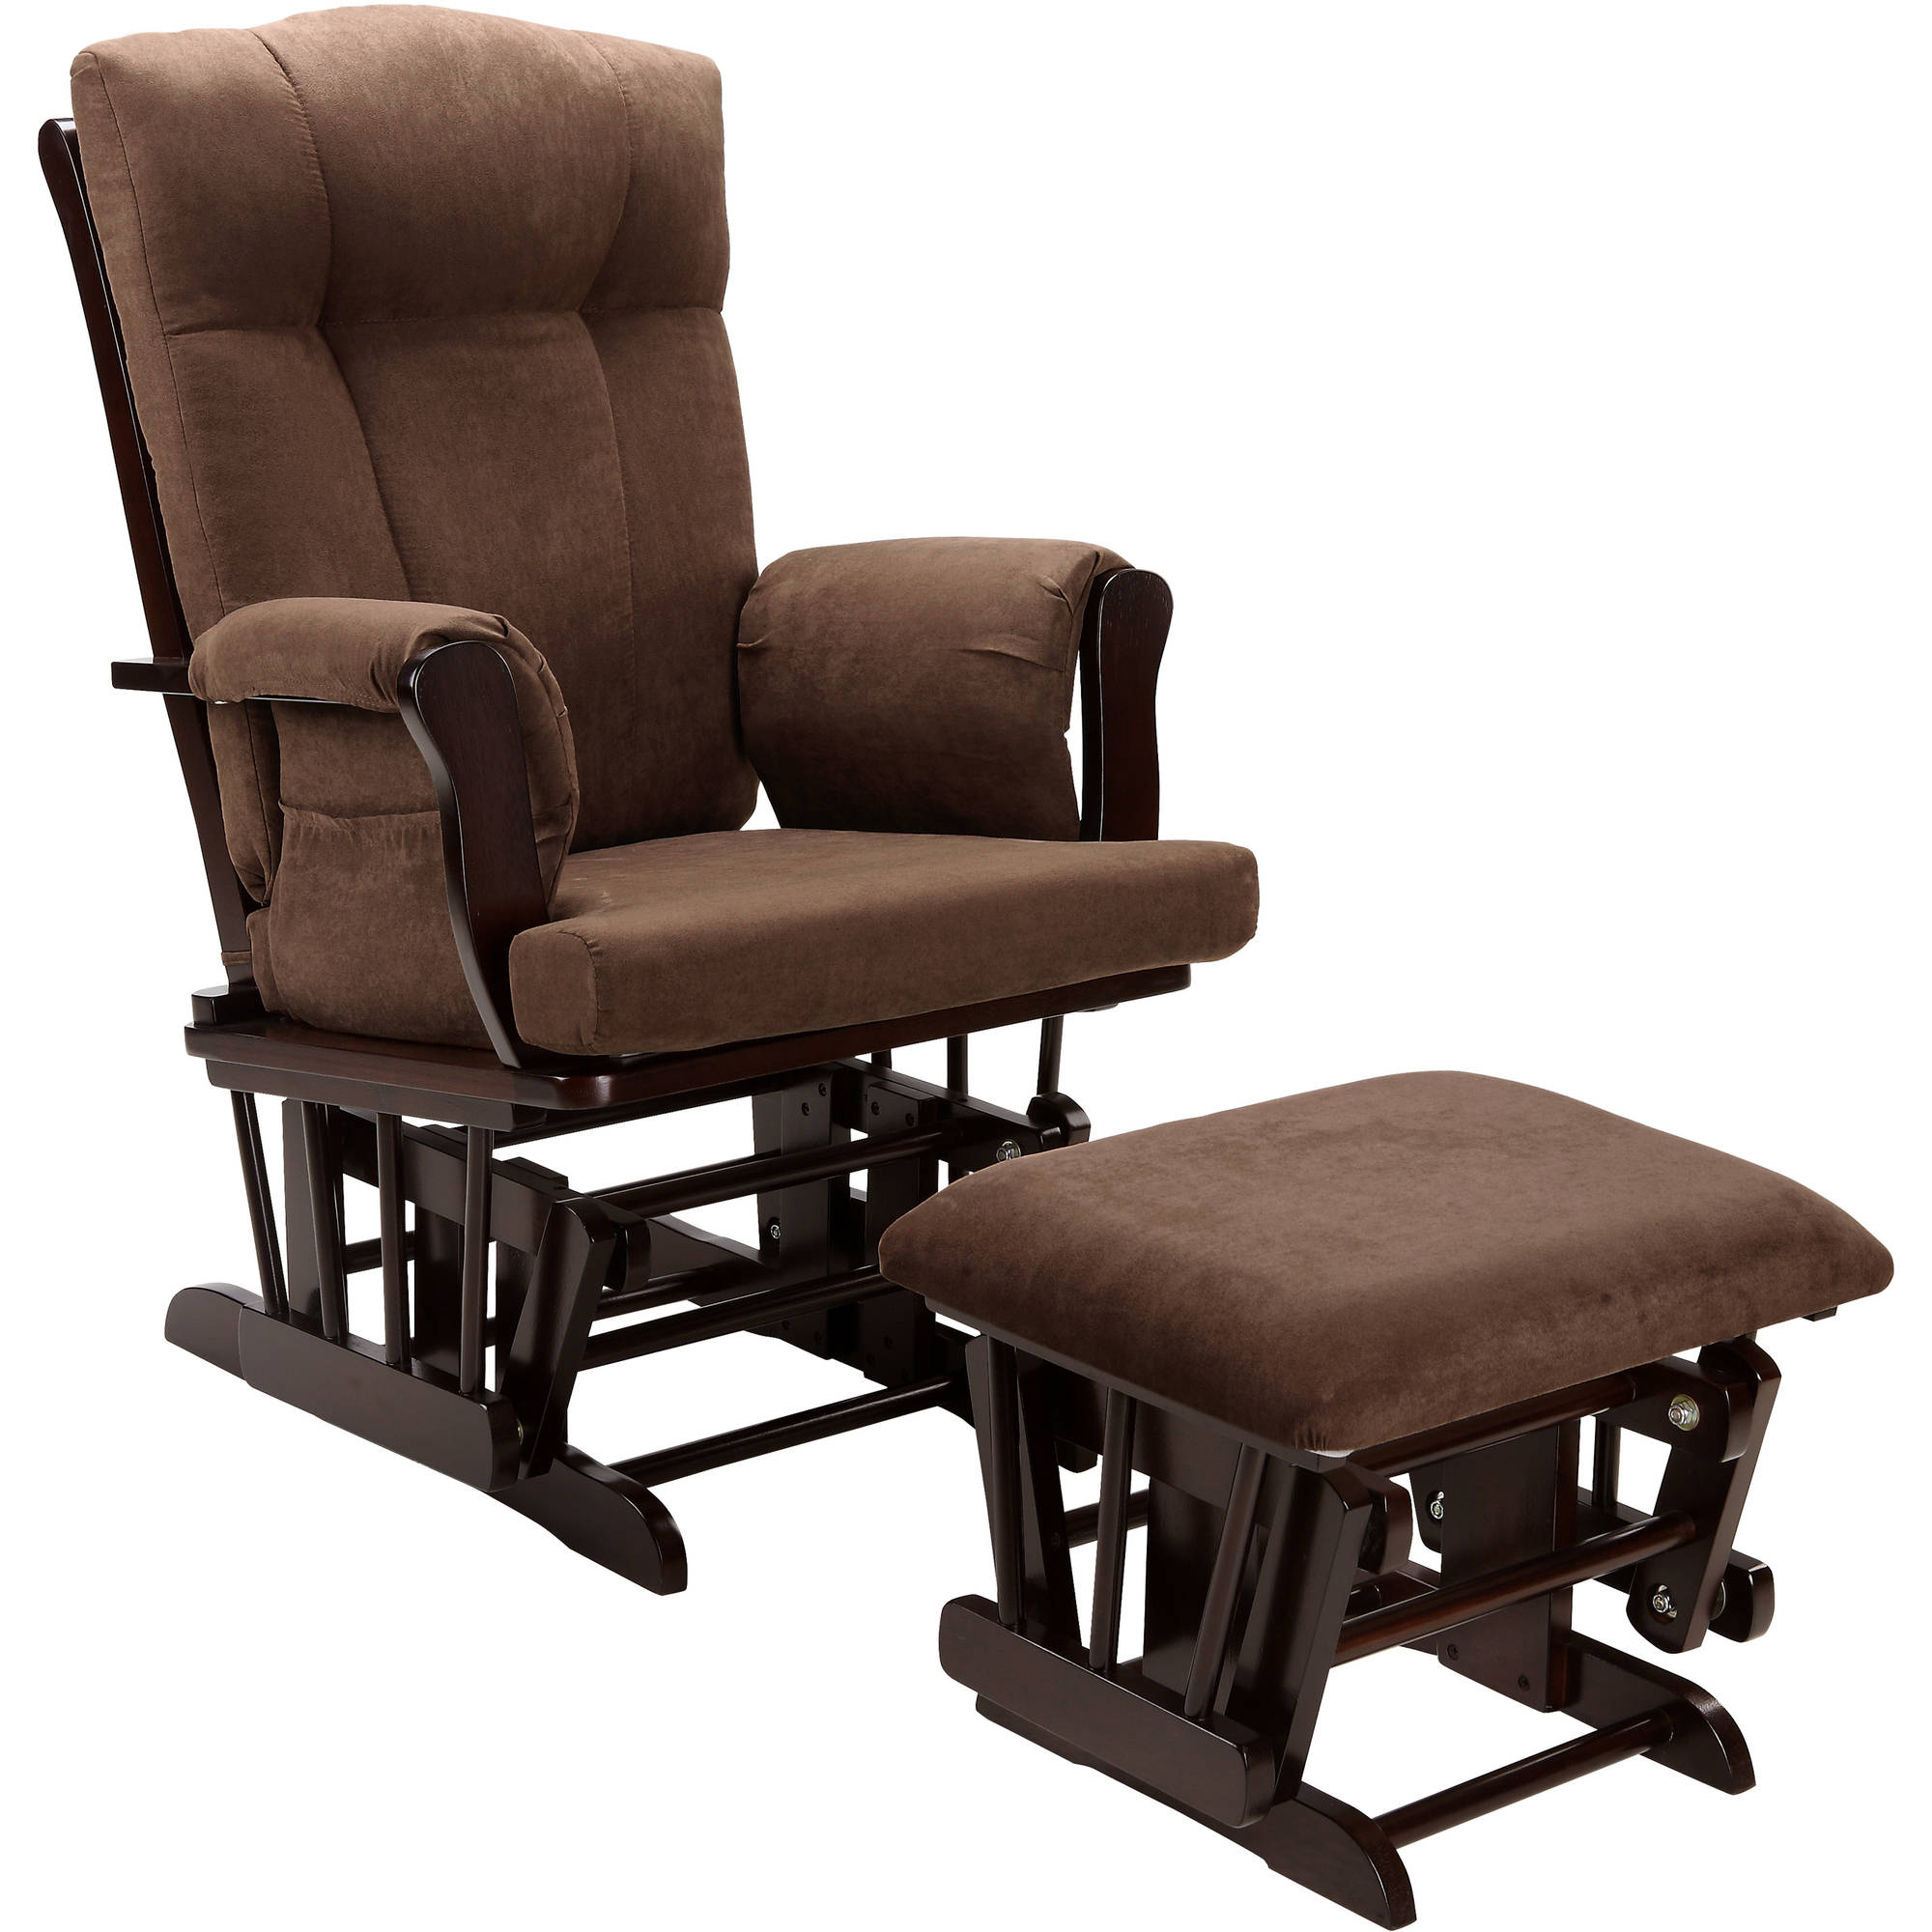 Marvelous Baby Relax Glider Rocker And Ottoman Espresso With Chocolate Cushions    Walmart.com